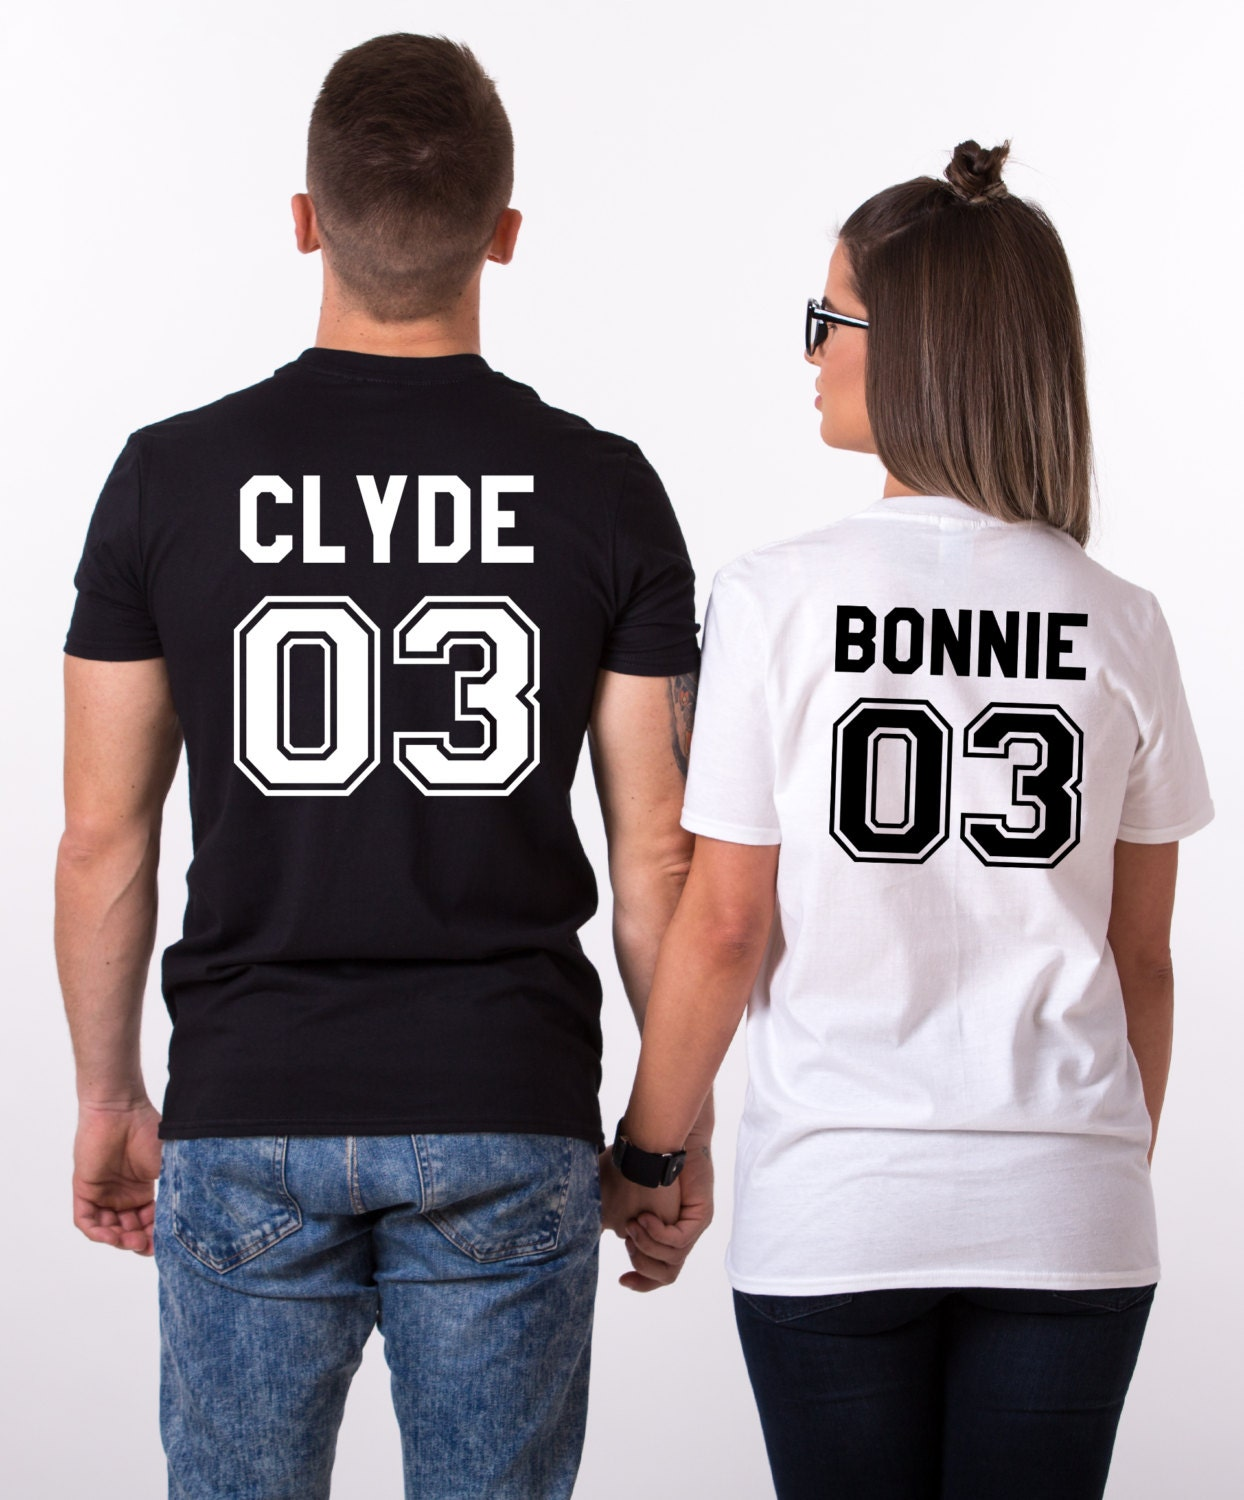 bonnie clyde 03 set of 2 couple t shirts bonnie clyde 03 set. Black Bedroom Furniture Sets. Home Design Ideas